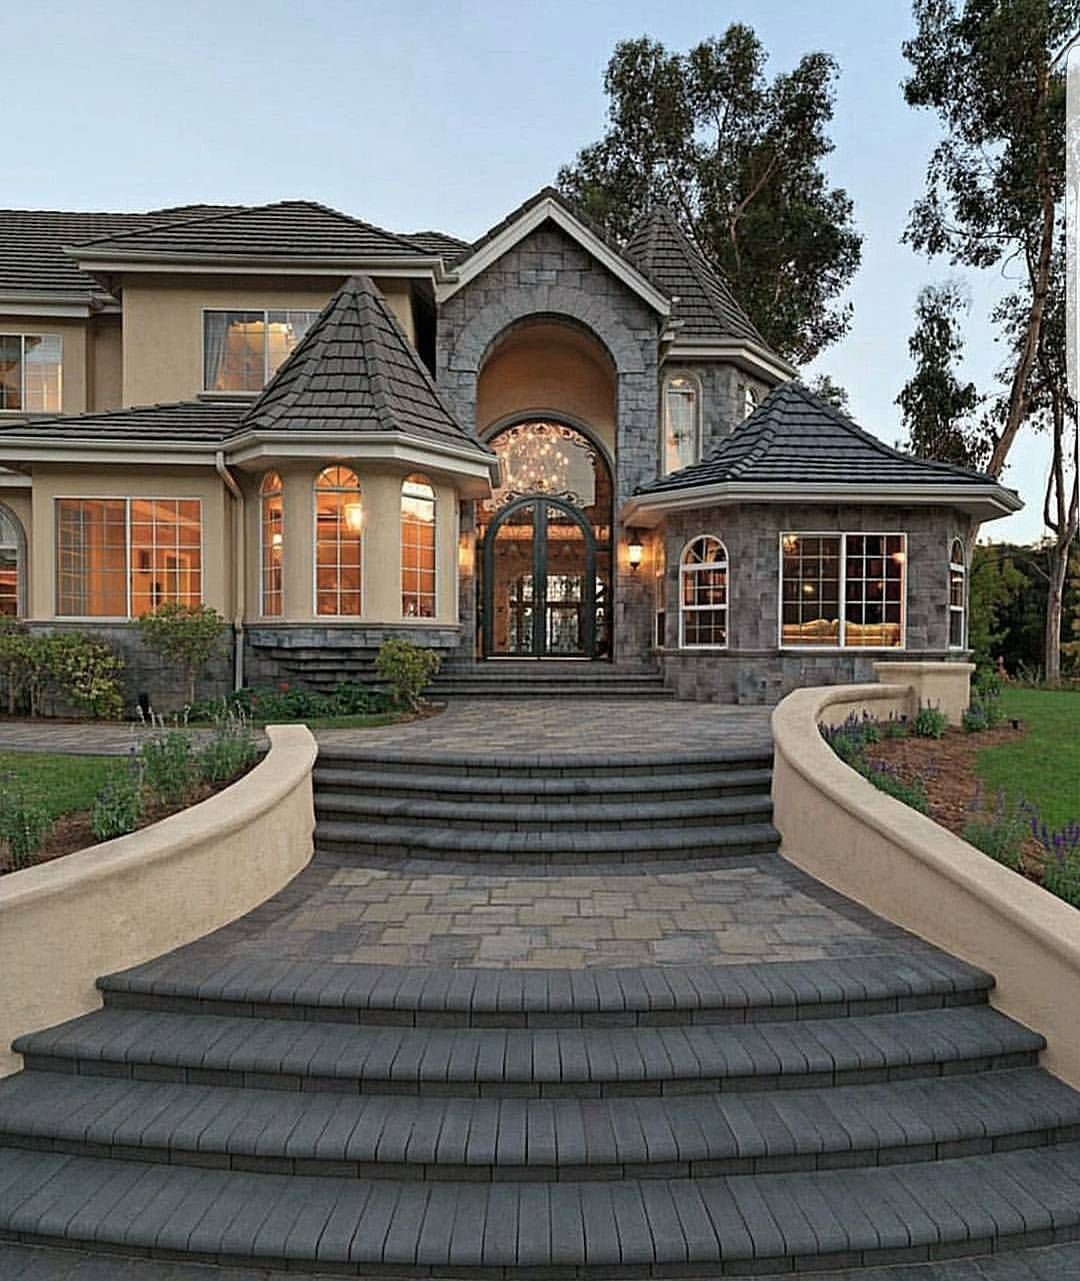 Amazing Ideas To Design The Home Of Your Dreams To See More Click On The Image Luxury Luxuryhomes H Dream Home Design House Designs Exterior Dream Mansion